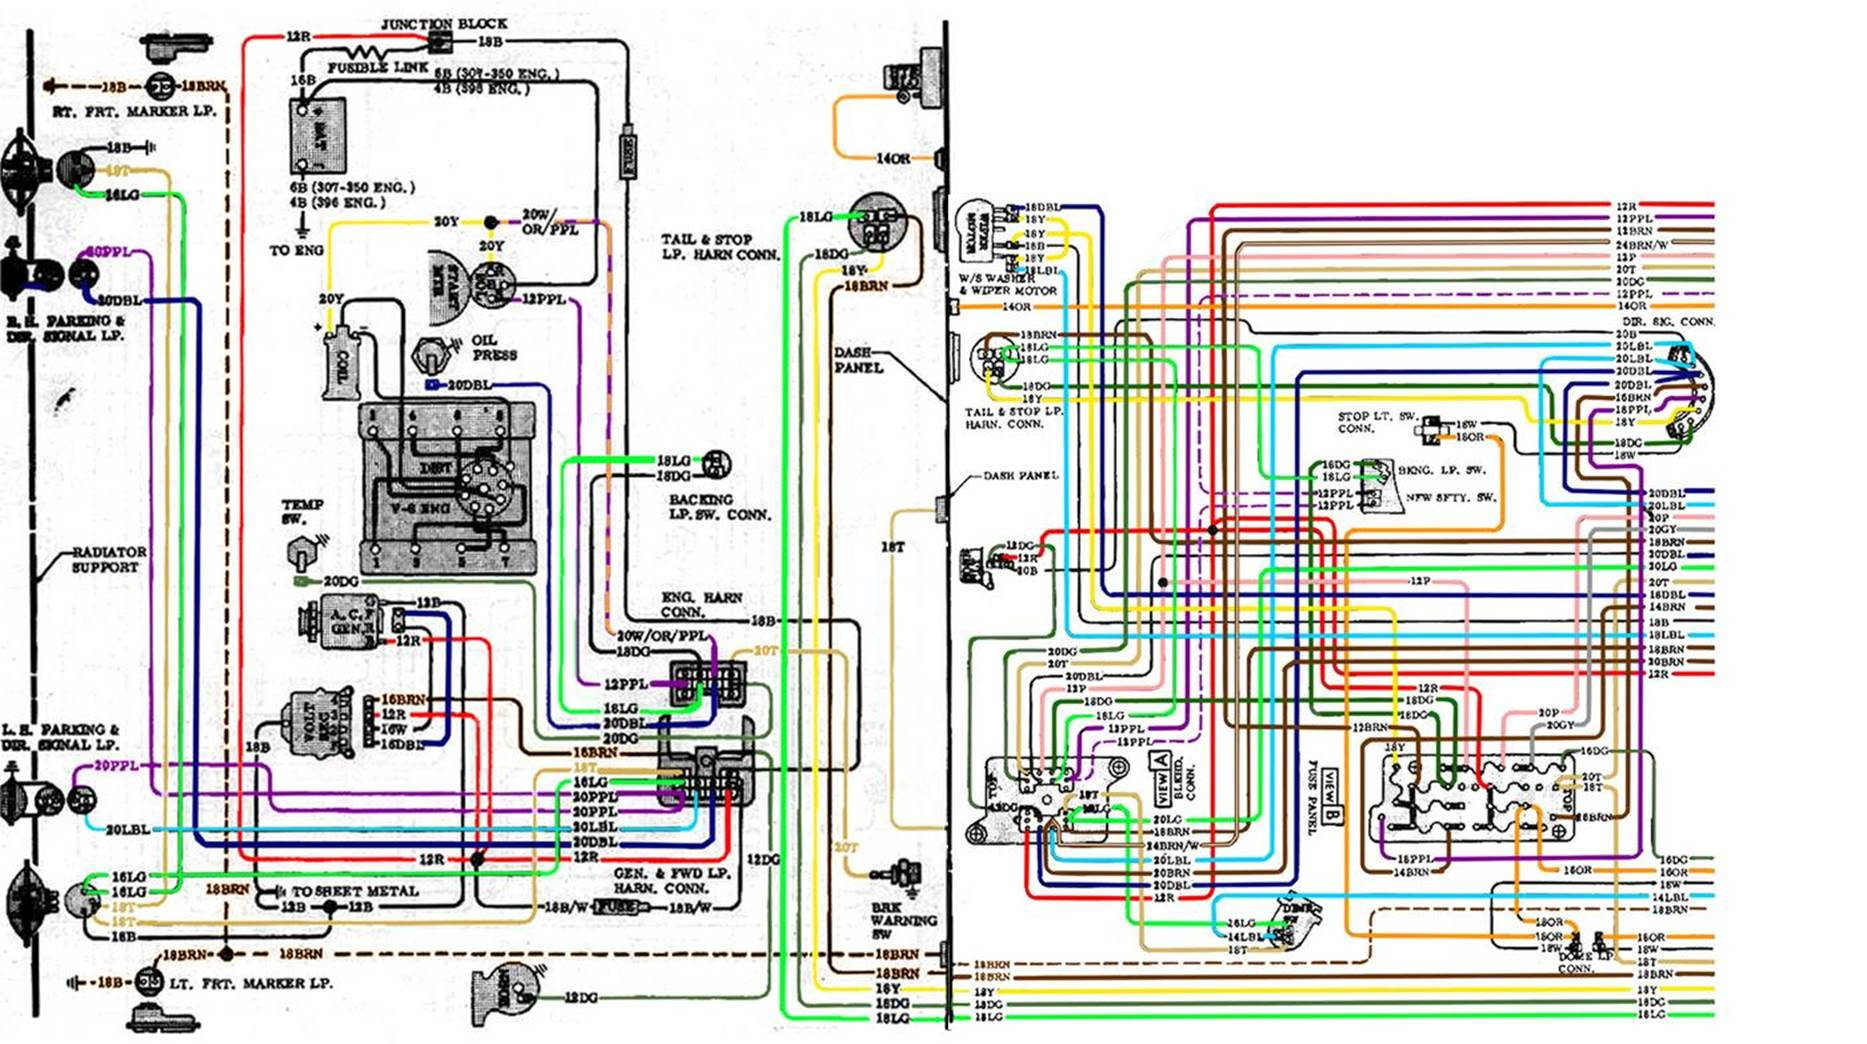 image002 67 72 chevy wiring diagram GM Headlight Wiring Harness at honlapkeszites.co